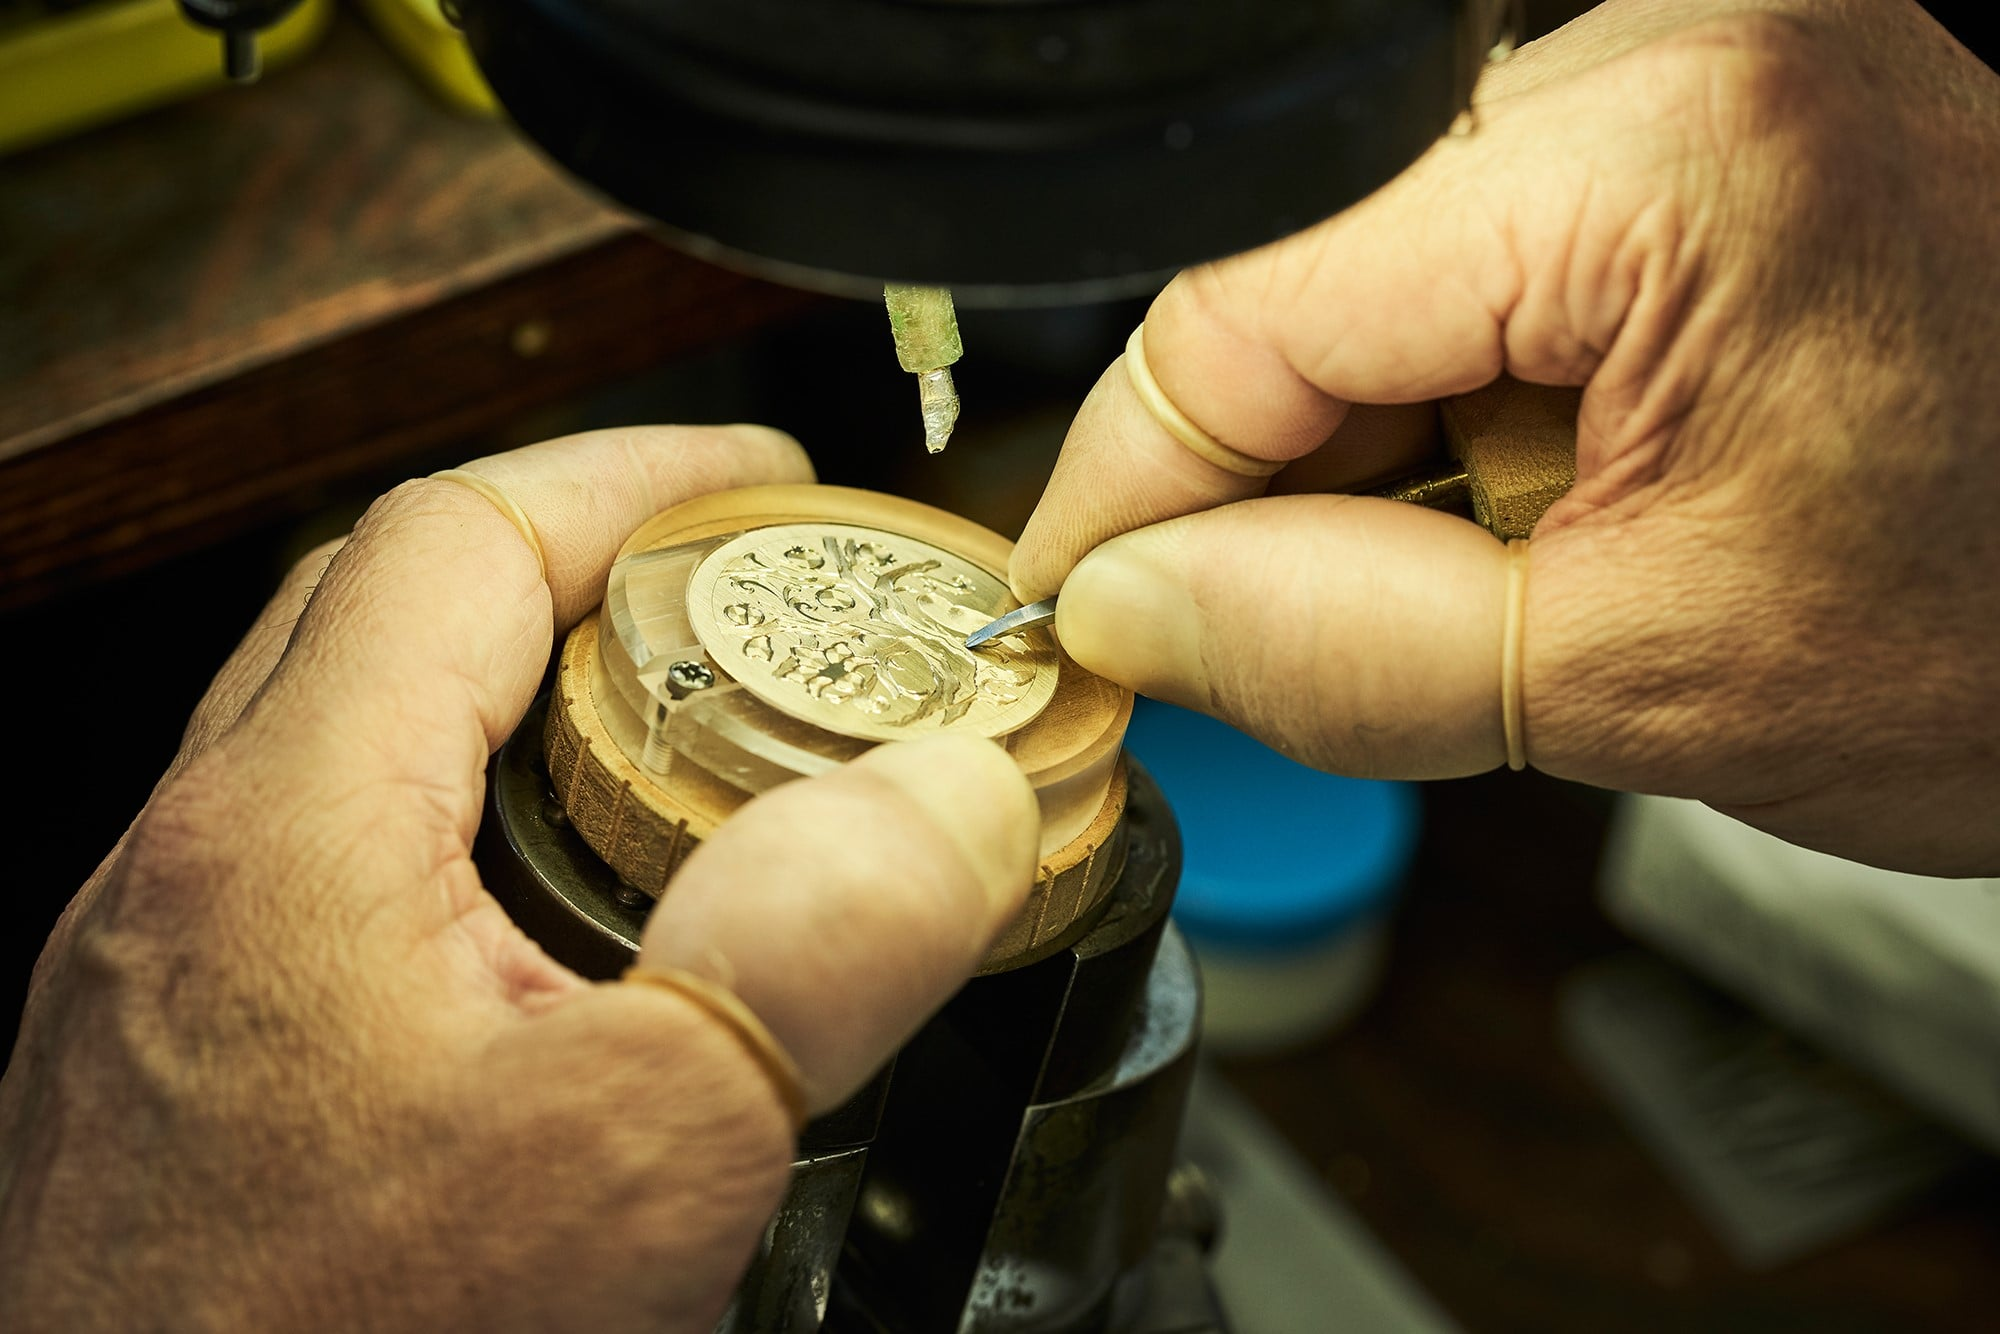 The production time exceeds beyond 100 hours to create the three-dimensional hand-engraving.